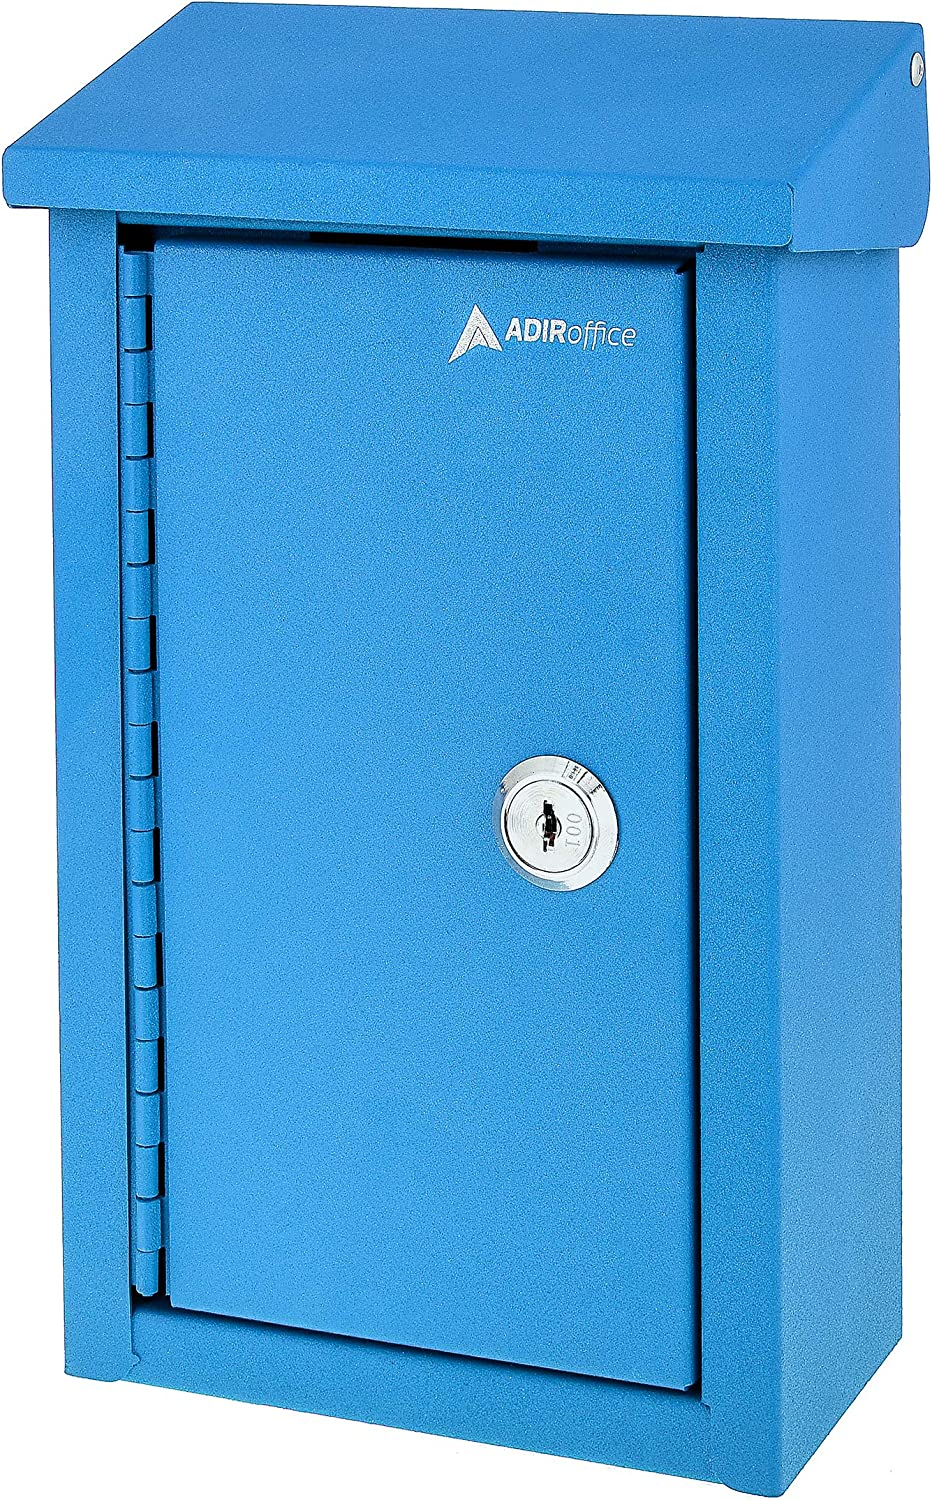 AdirOffice Outdoor Large Key Drop Box - Commercial Grade Heavy-Duty Storage Box - Safe & Secure Parcel & Packages - for Home & Business Use (Blue)